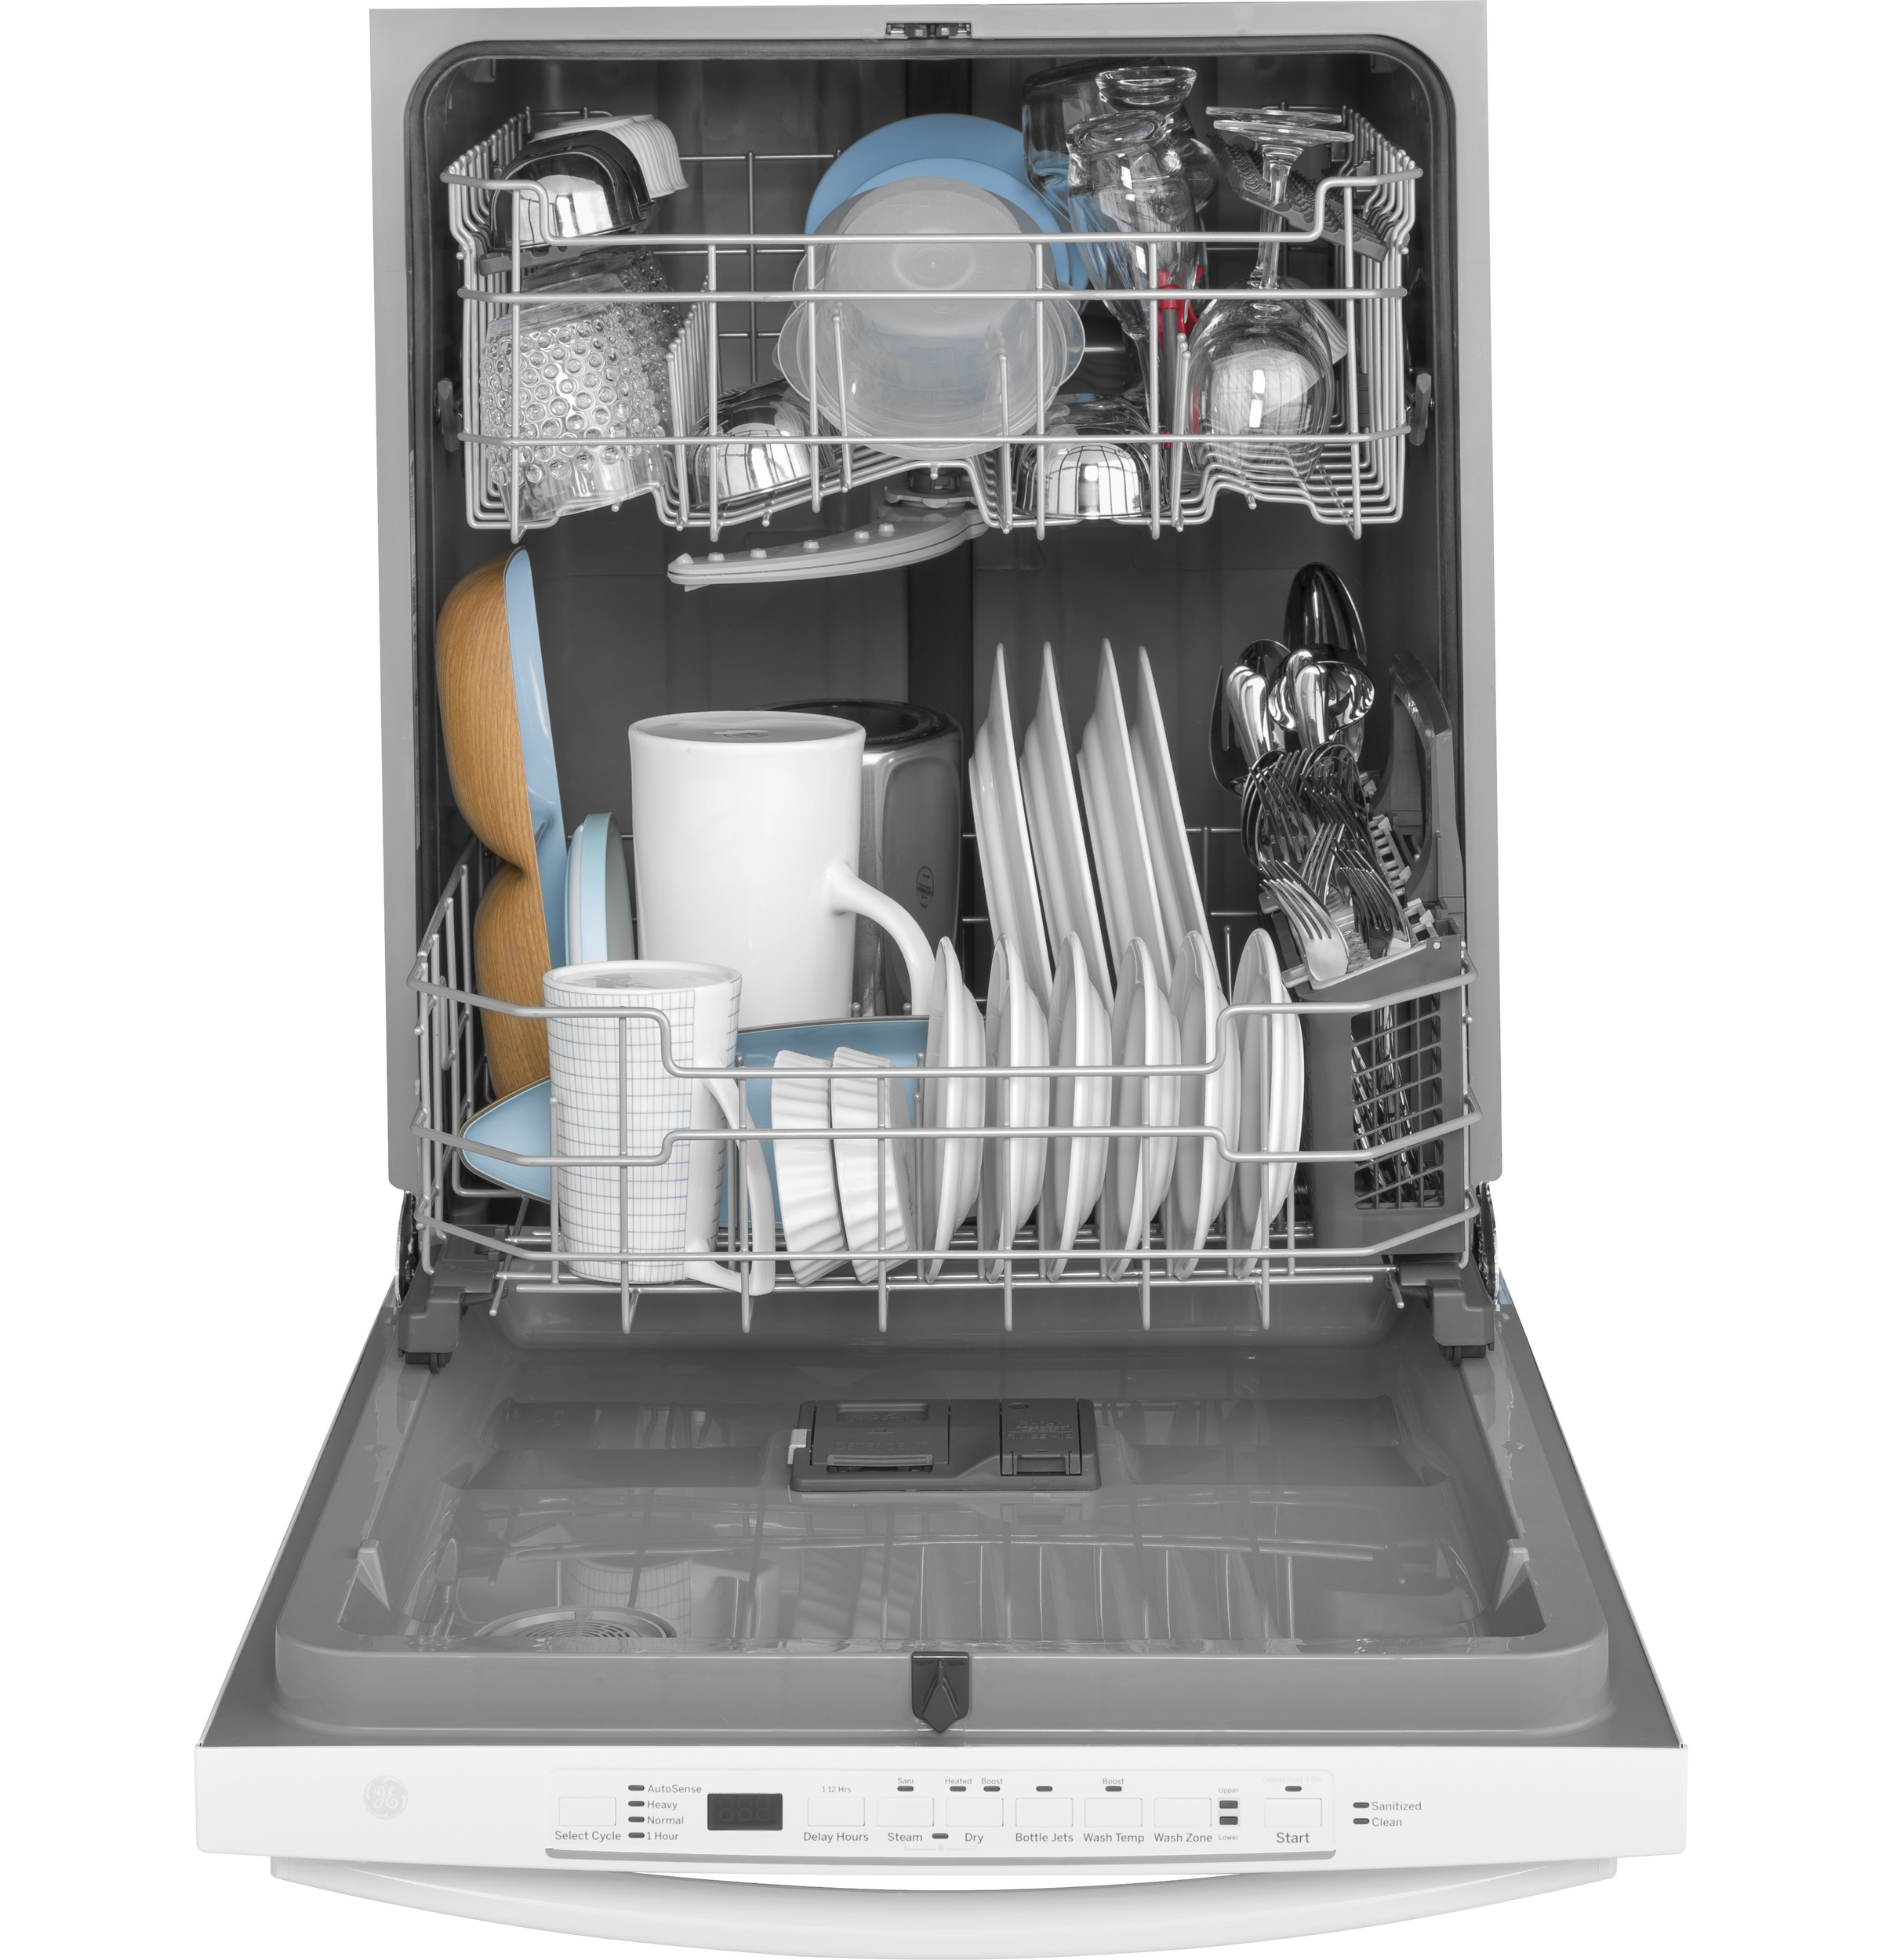 Model: GDT605PGMWW | GE GE® Top Control with Plastic Interior Dishwasher with Sanitize Cycle & Dry Boost